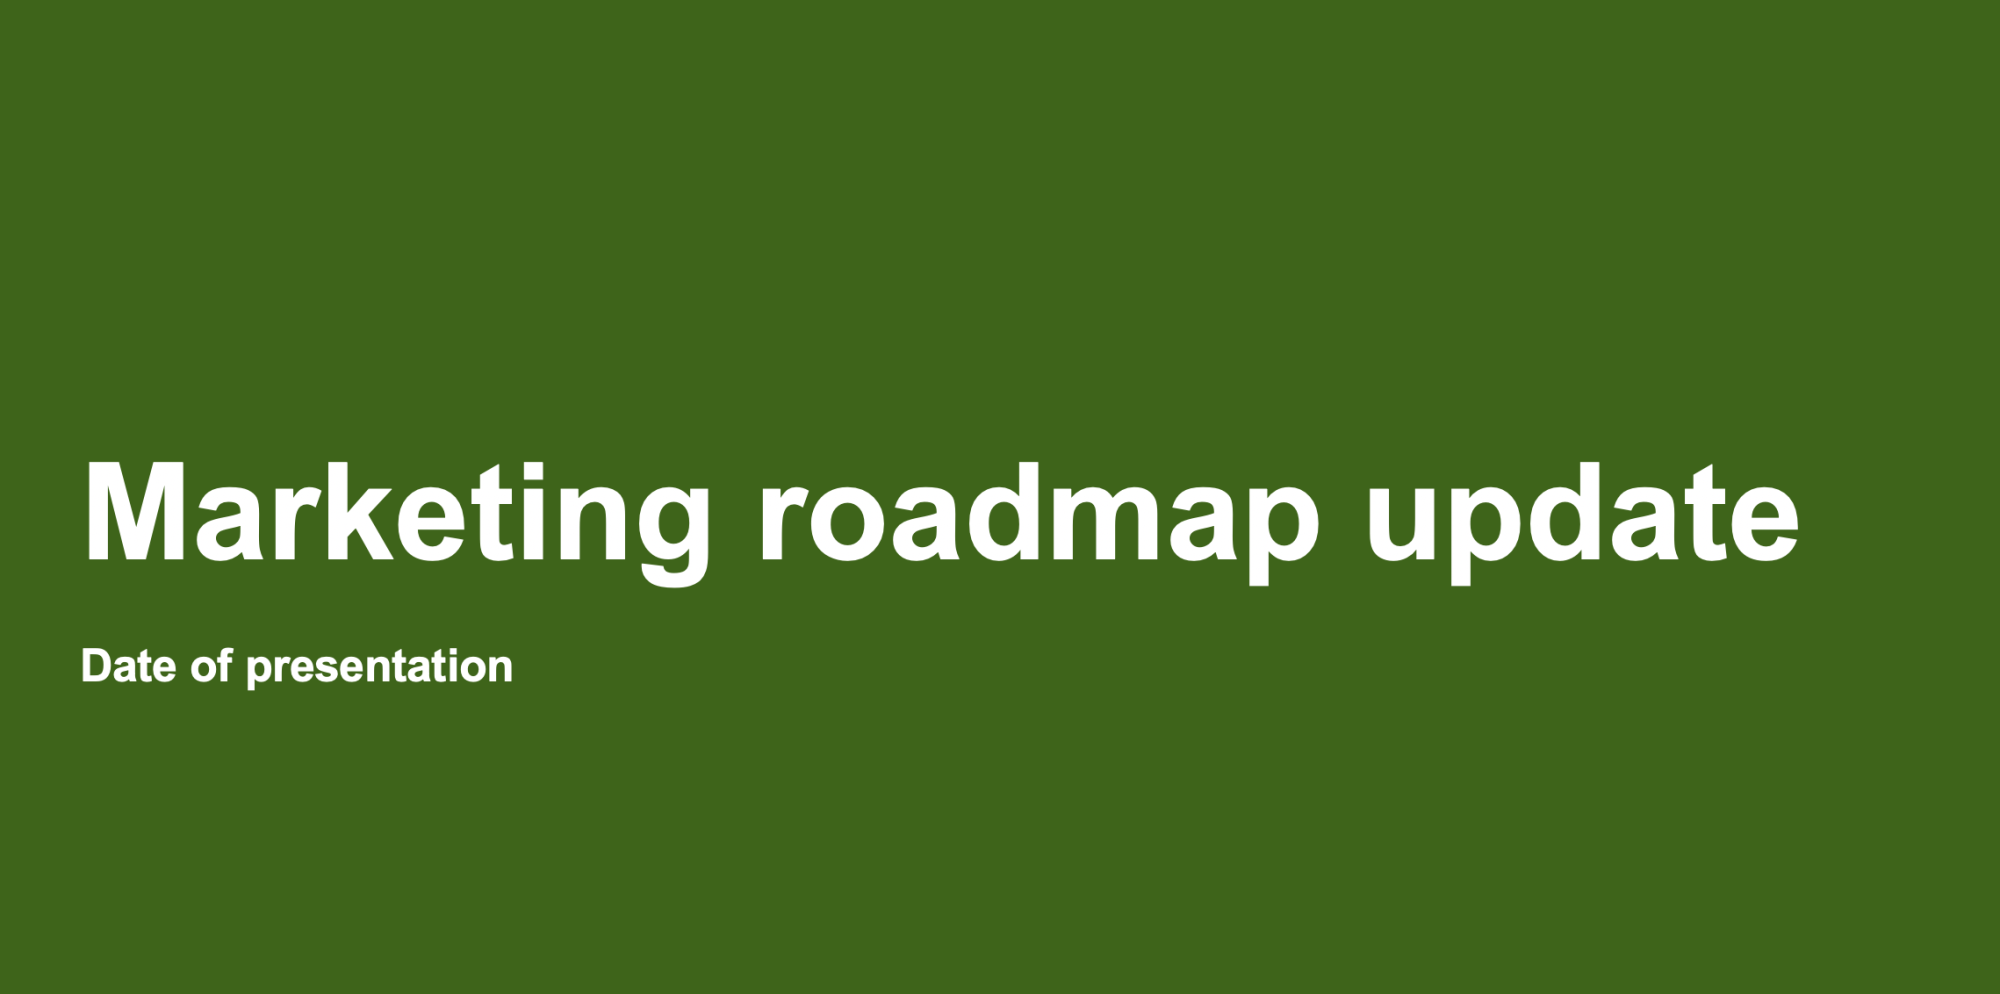 Marketing roadmap update